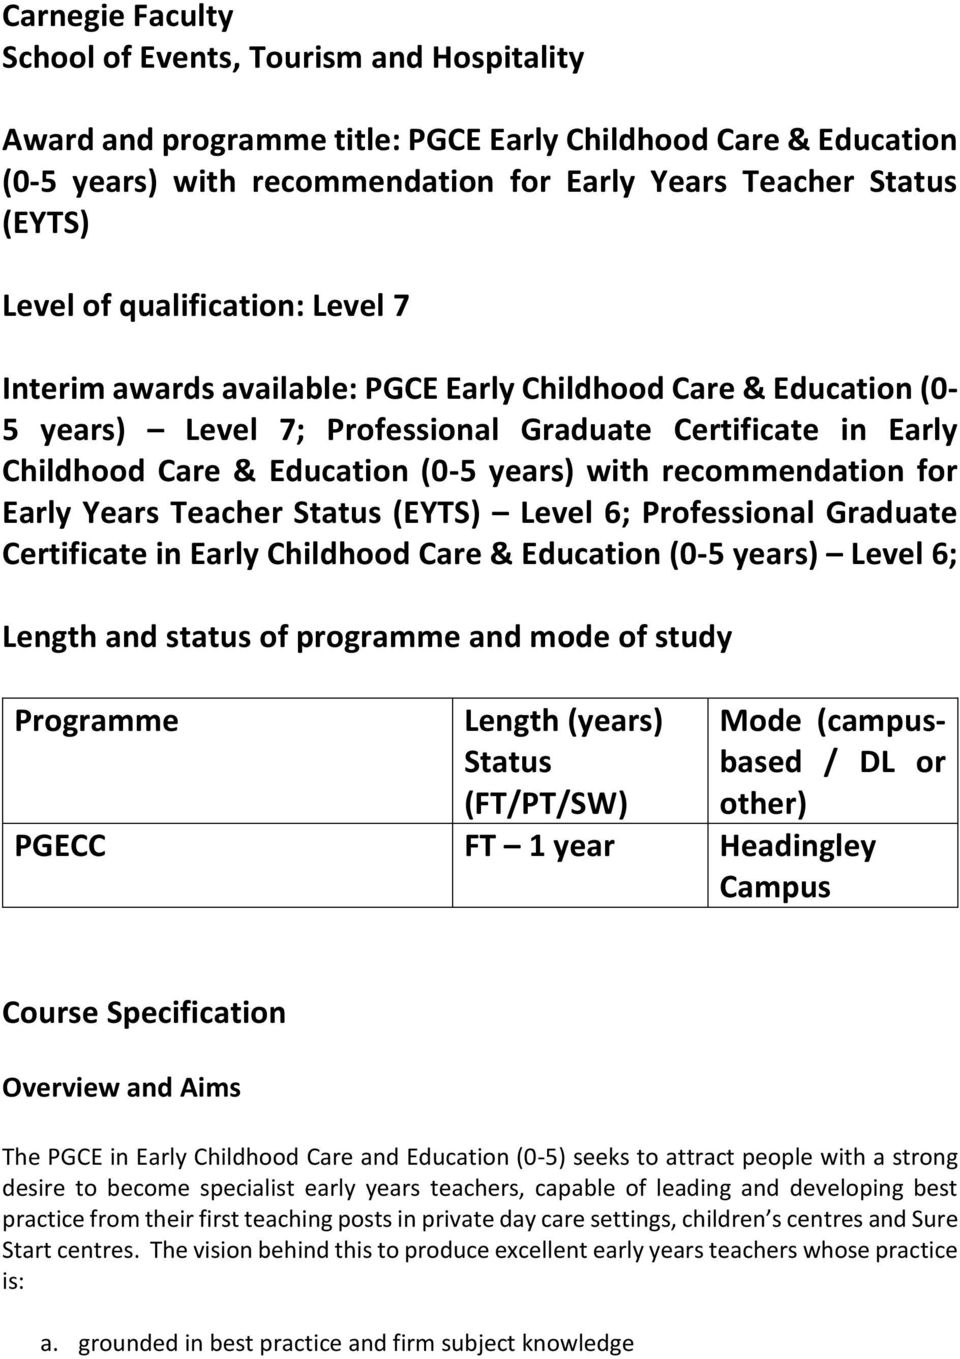 recommendation for Early Years Teacher Status (EYTS) Level 6; Professional Graduate Certificate in Early Childhood Care & Education (0-5 years) Level 6; Length and status of programme and mode of